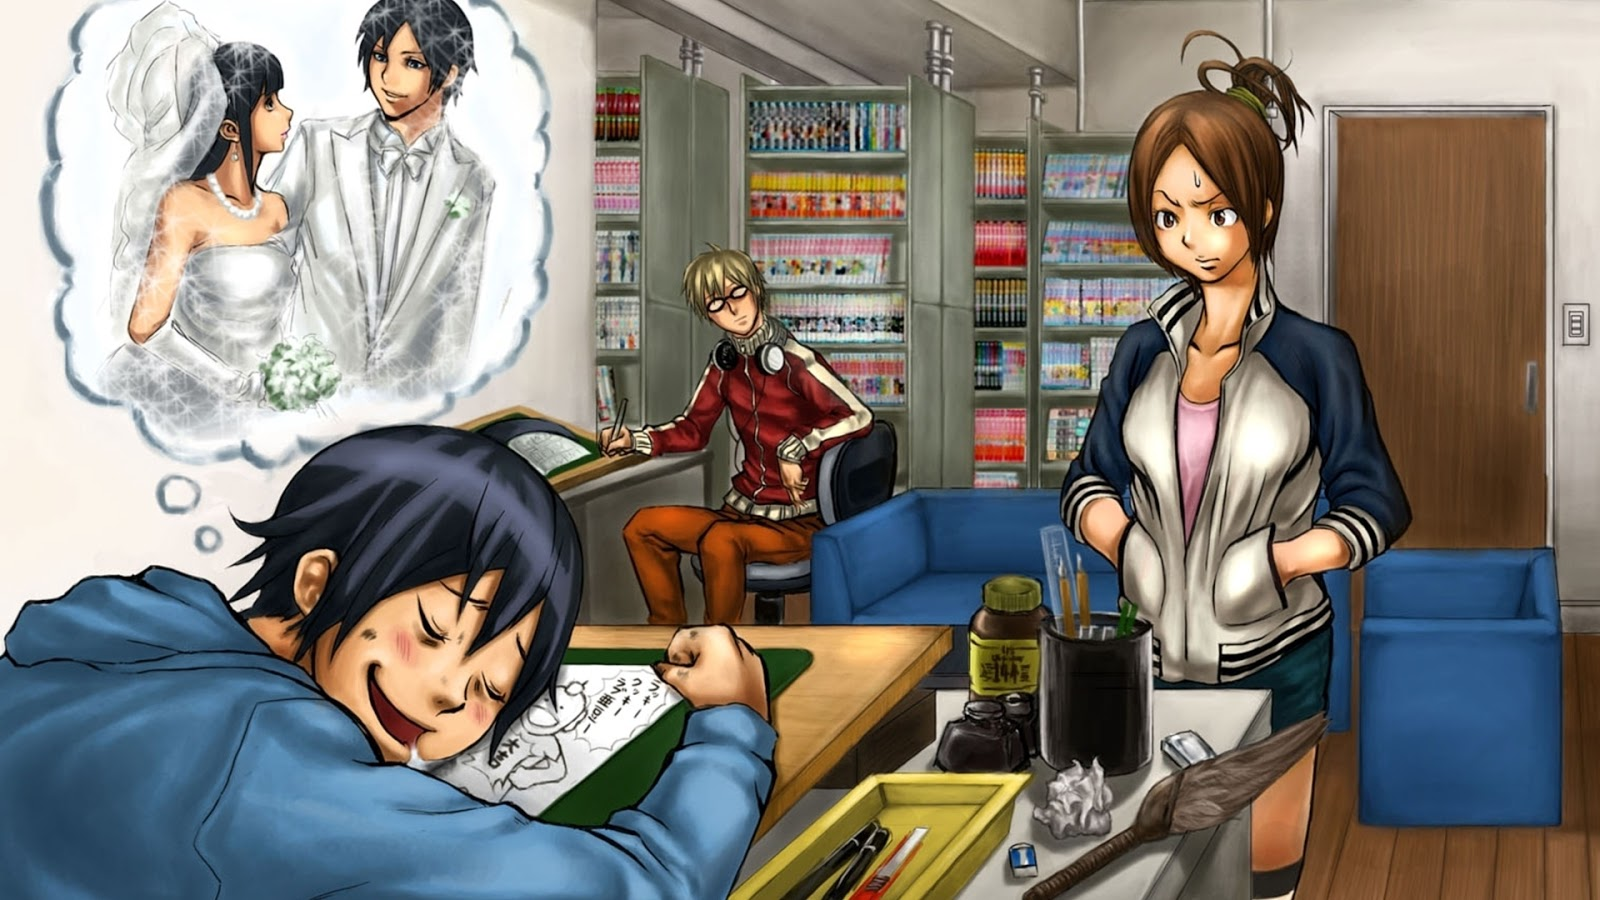 Download wallpapers bakuman, masiro moritaka, akito takagi